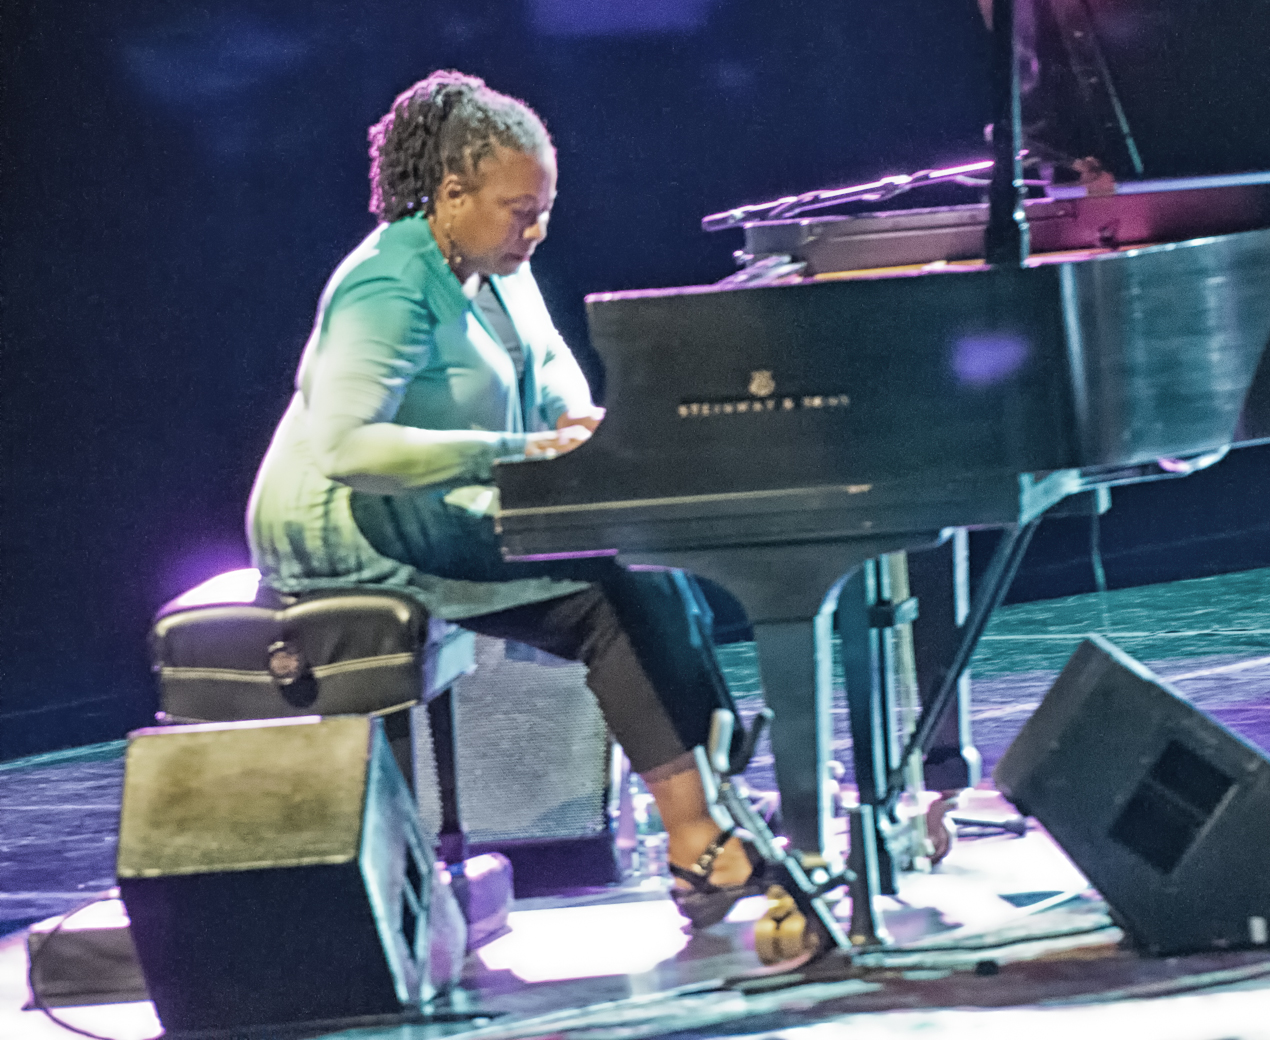 Geri allen with acs at the montreal international jazz festival 2013